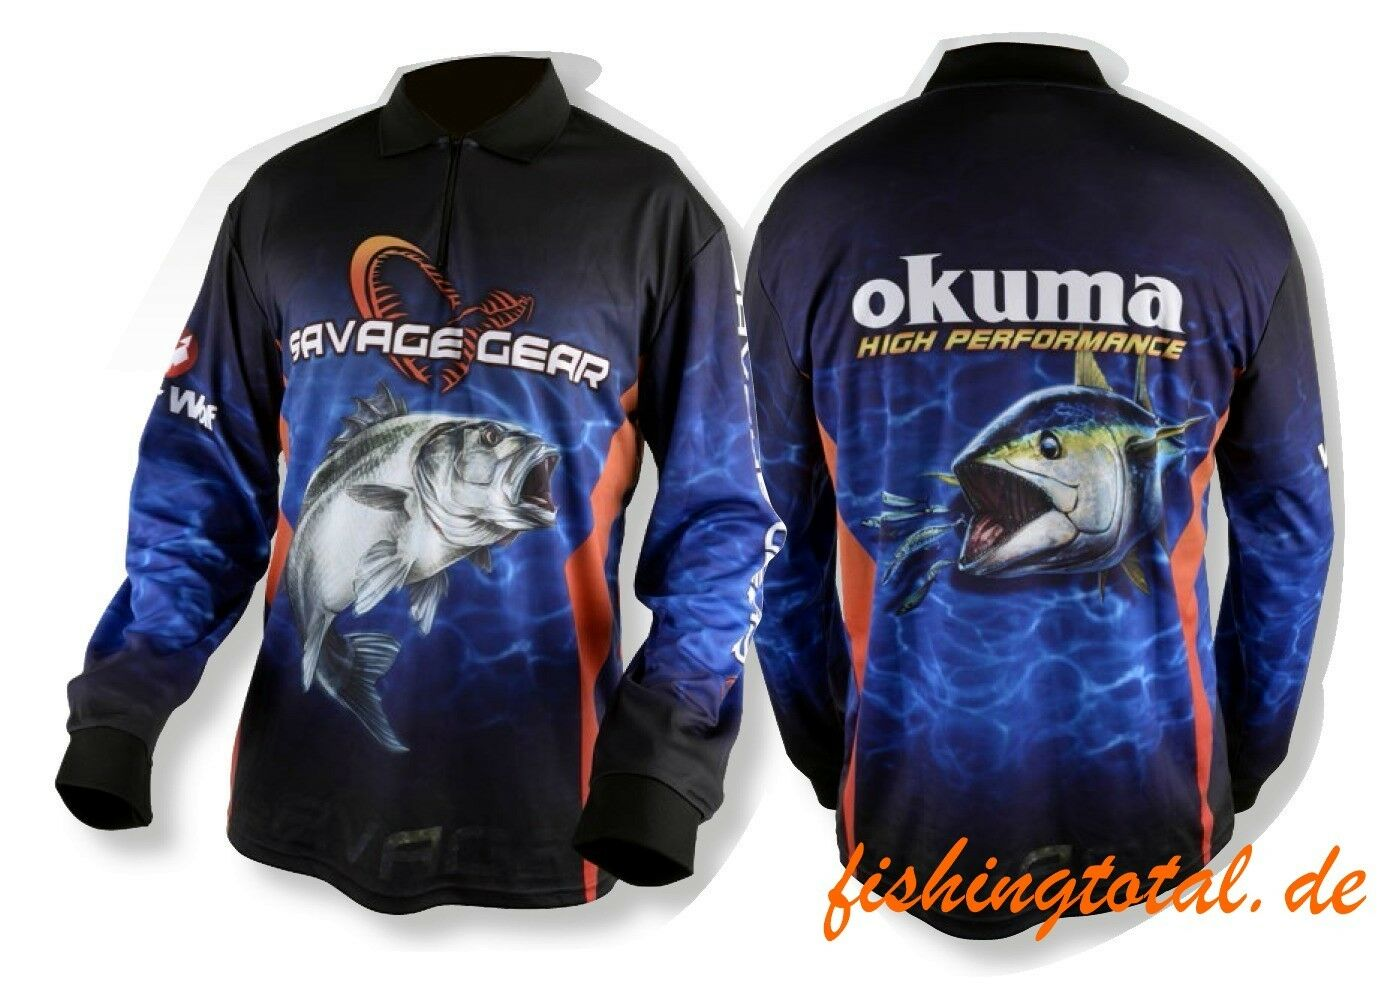 Savage Gear Tournament Jersey Seabass Tuna Size Selectable Competition Shirt   check out the cheapest